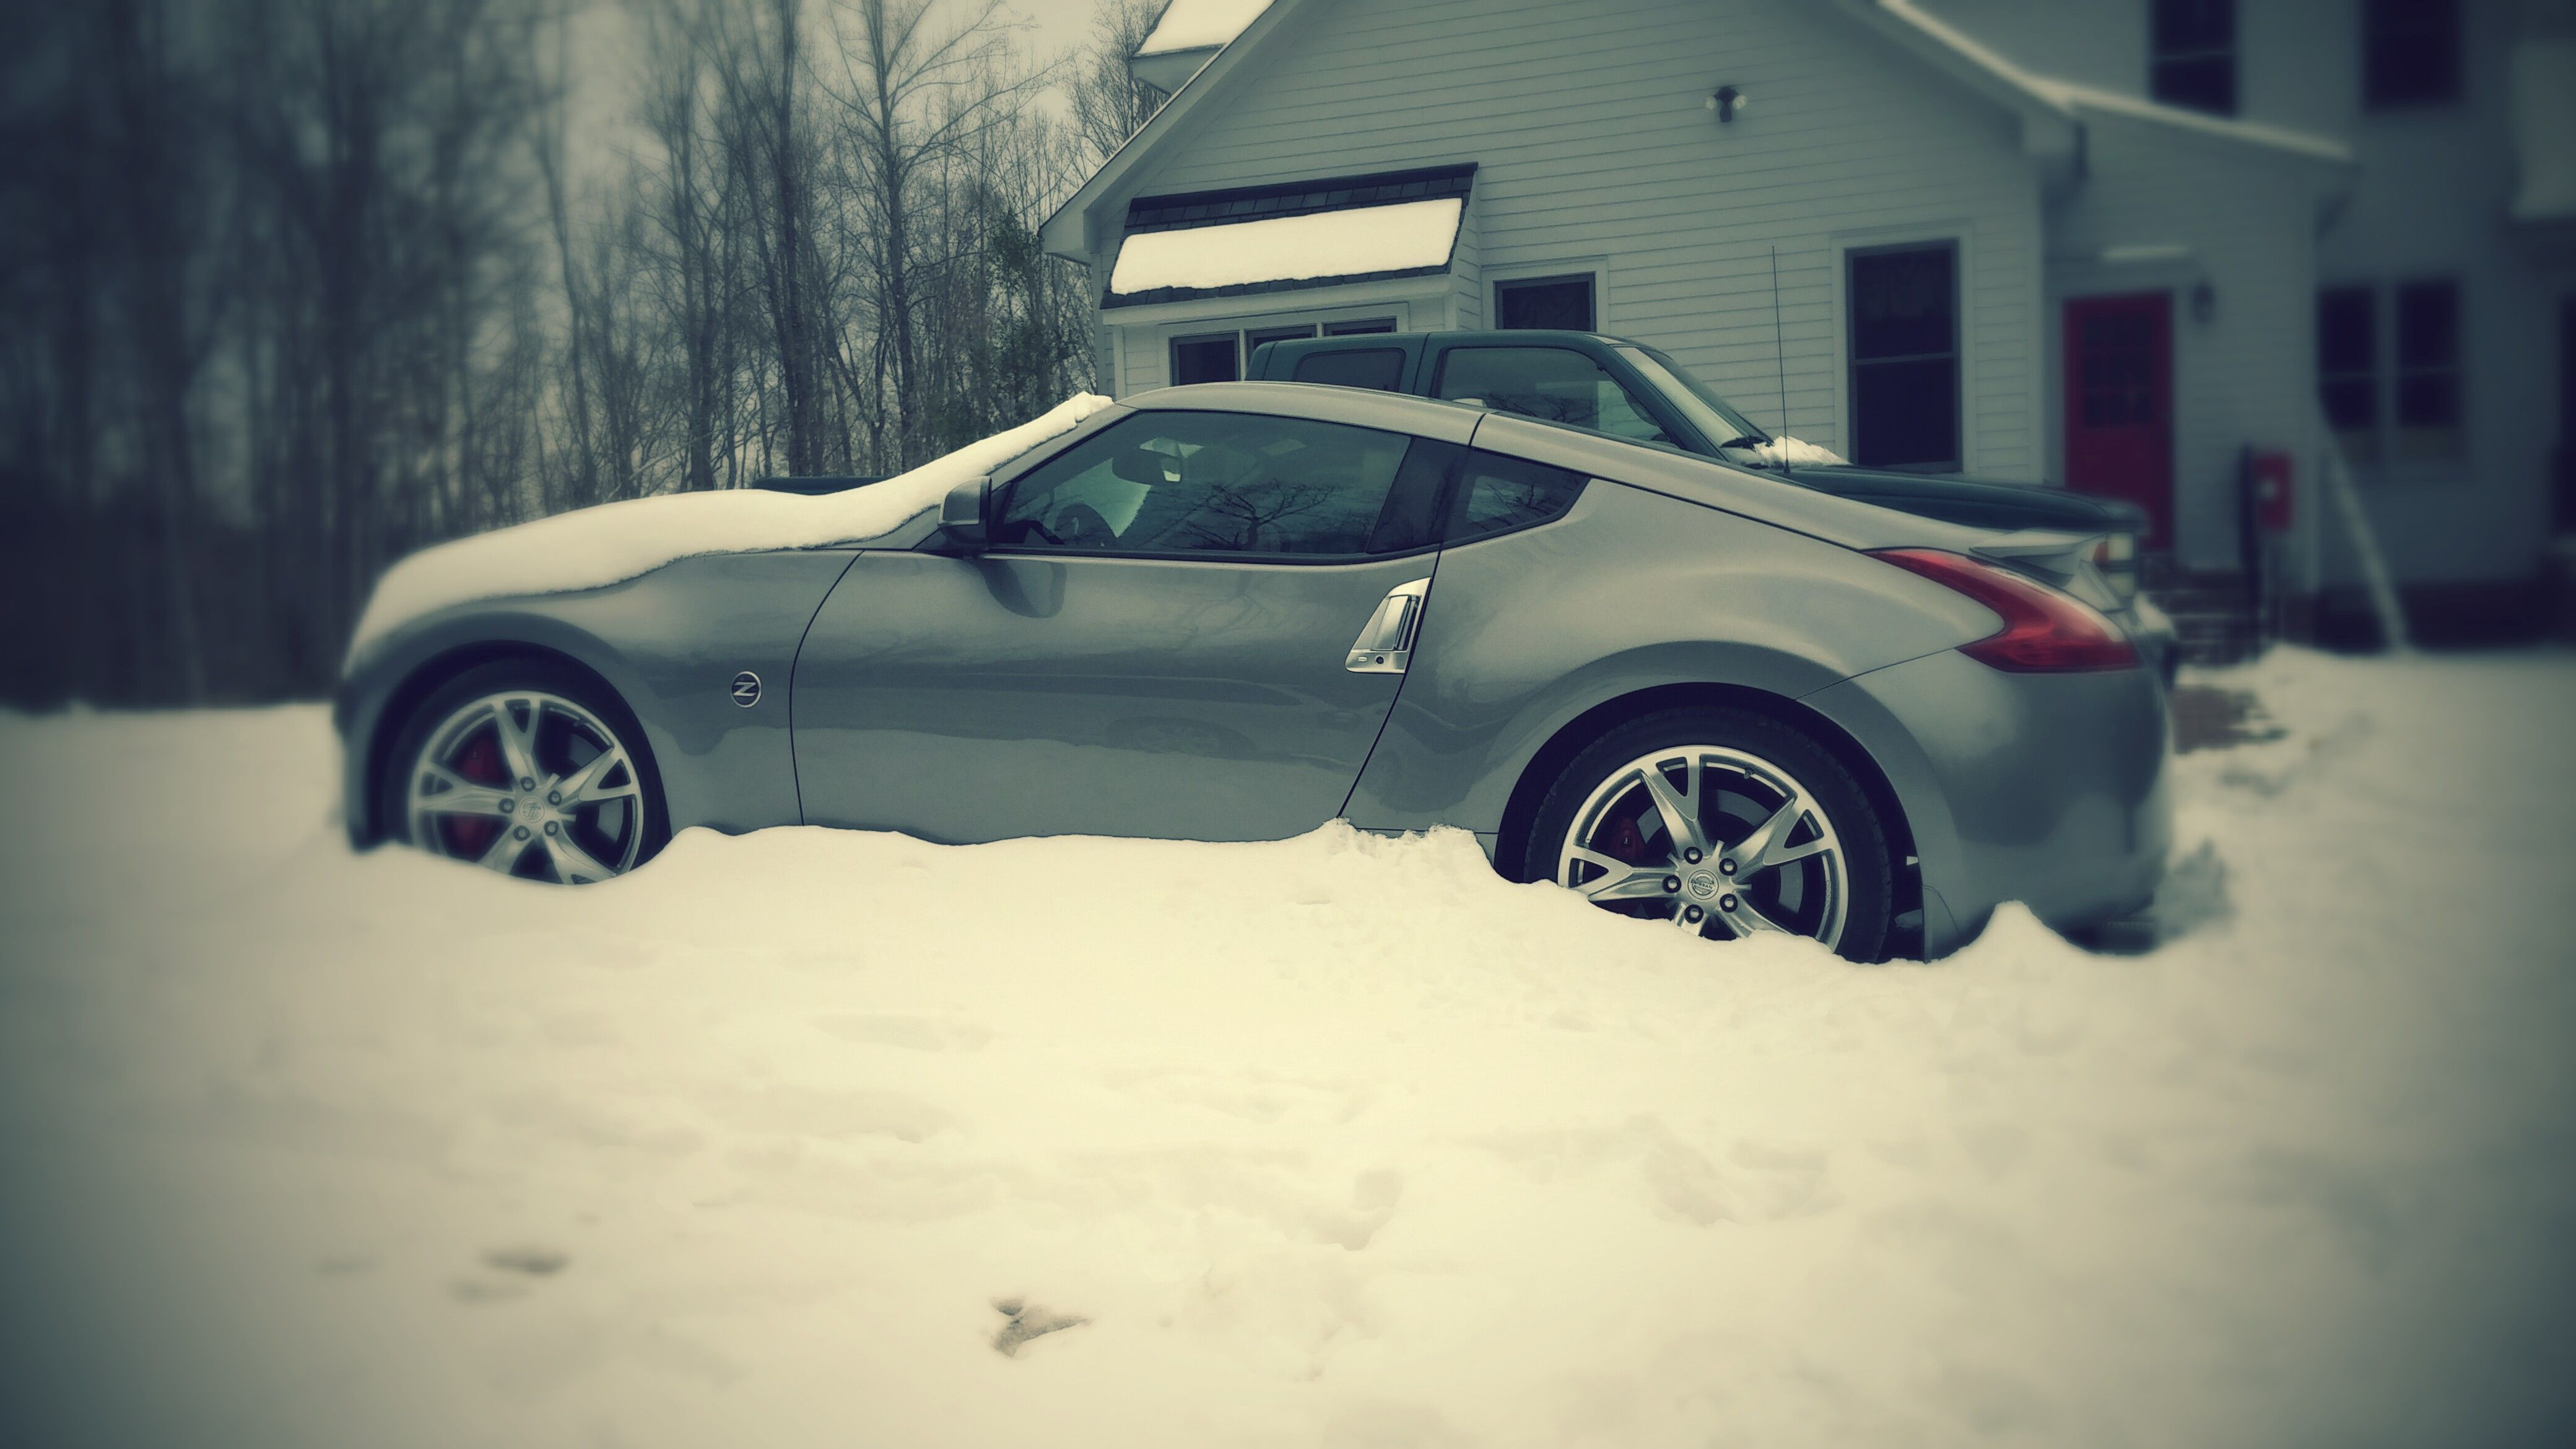 Old Man Winter is hard on my Z!